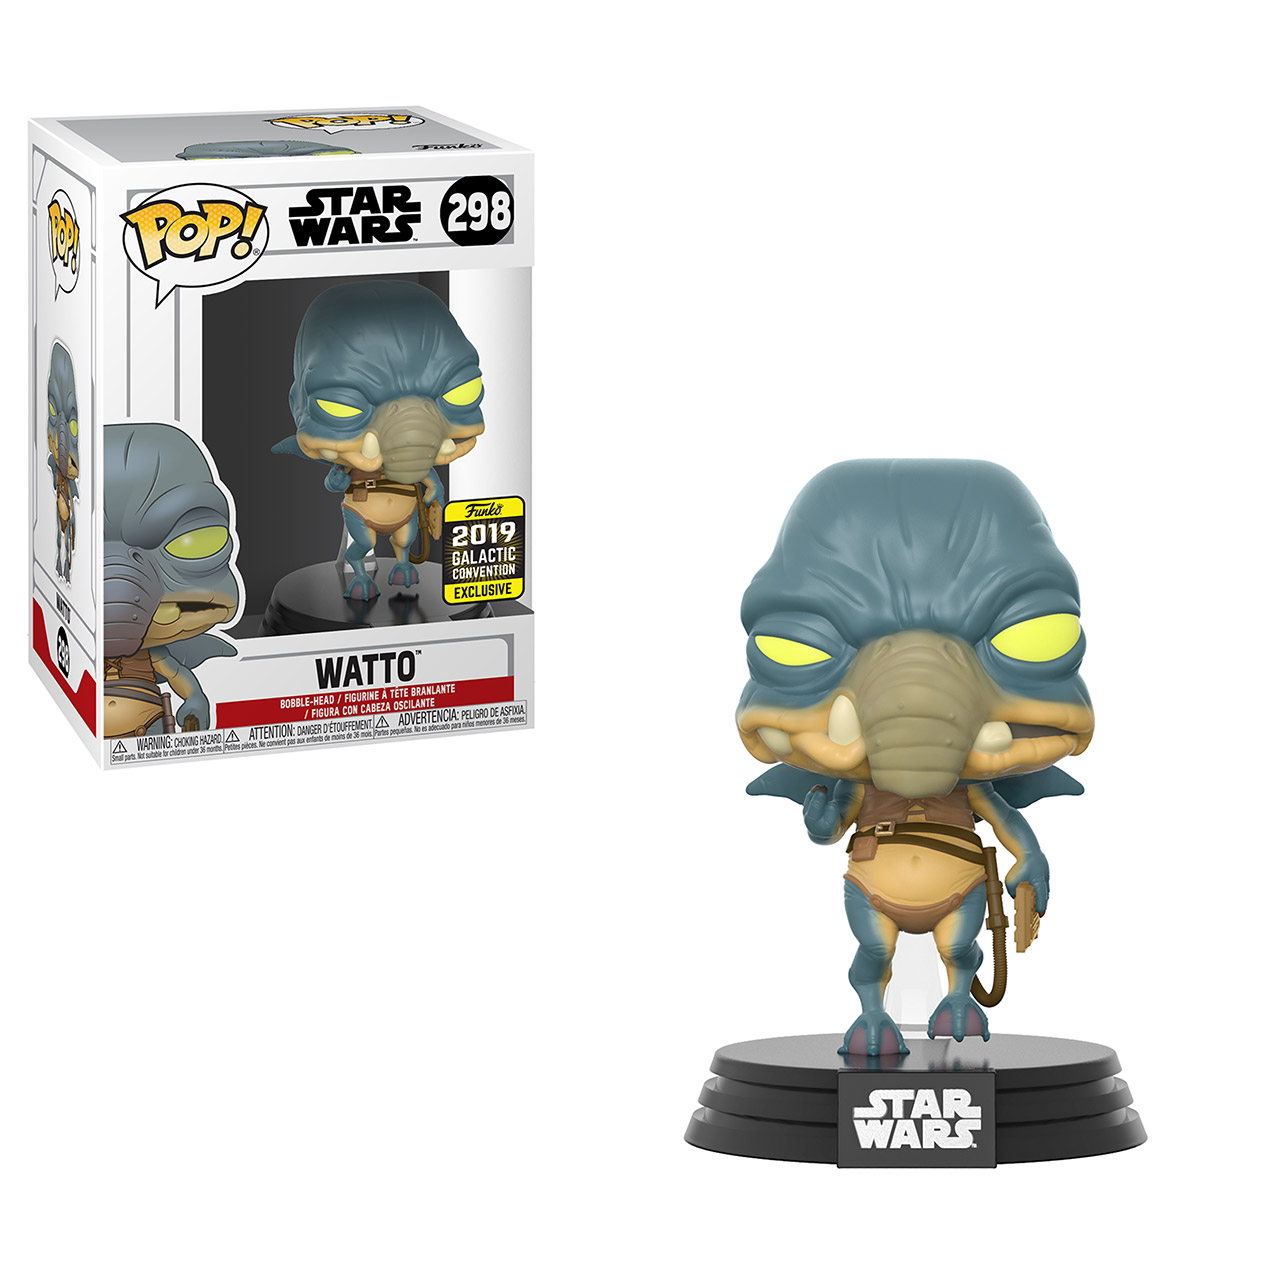 Star Wars Celebration 2019 Funko Exclusive POP 298